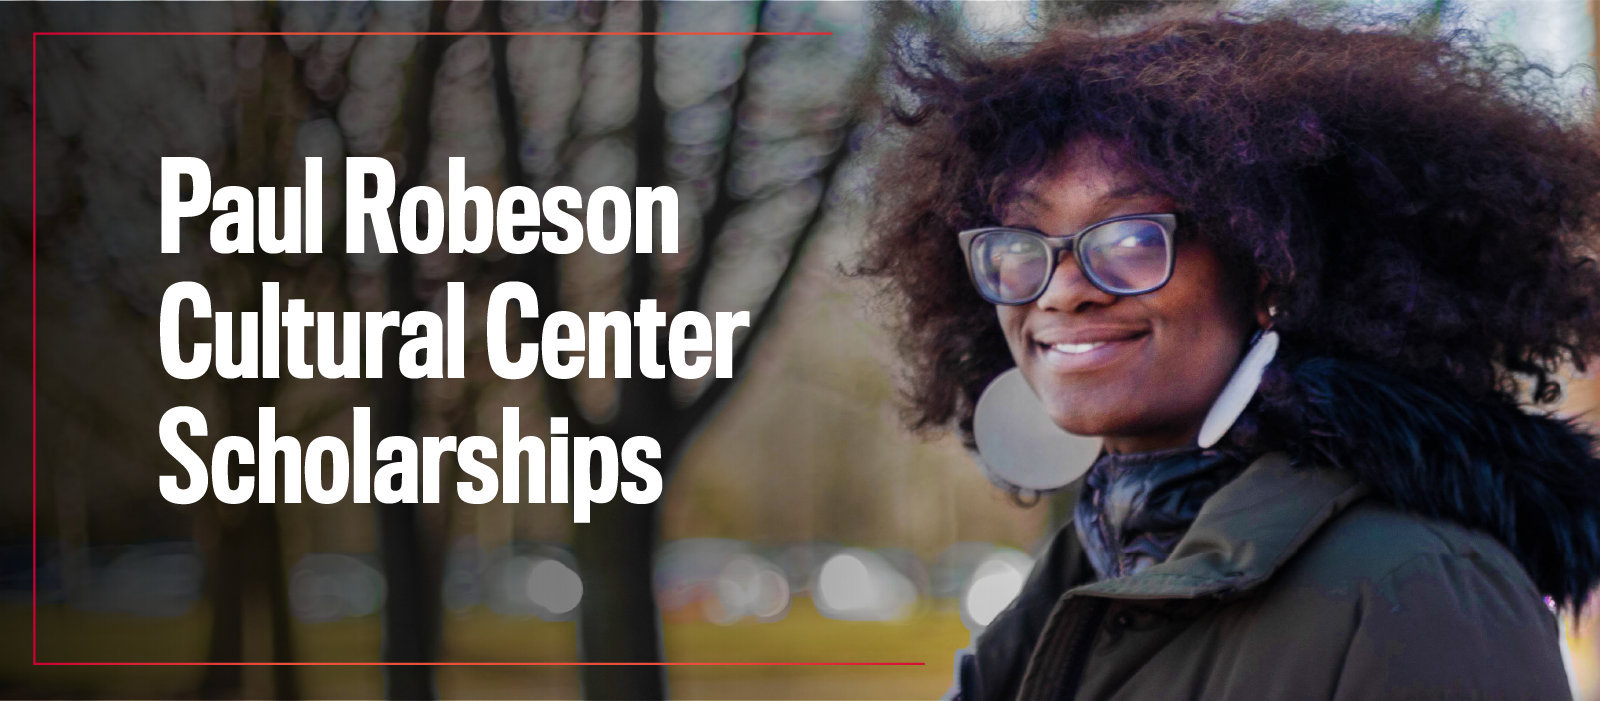 Paul Robeson Cultural Center Scholarships